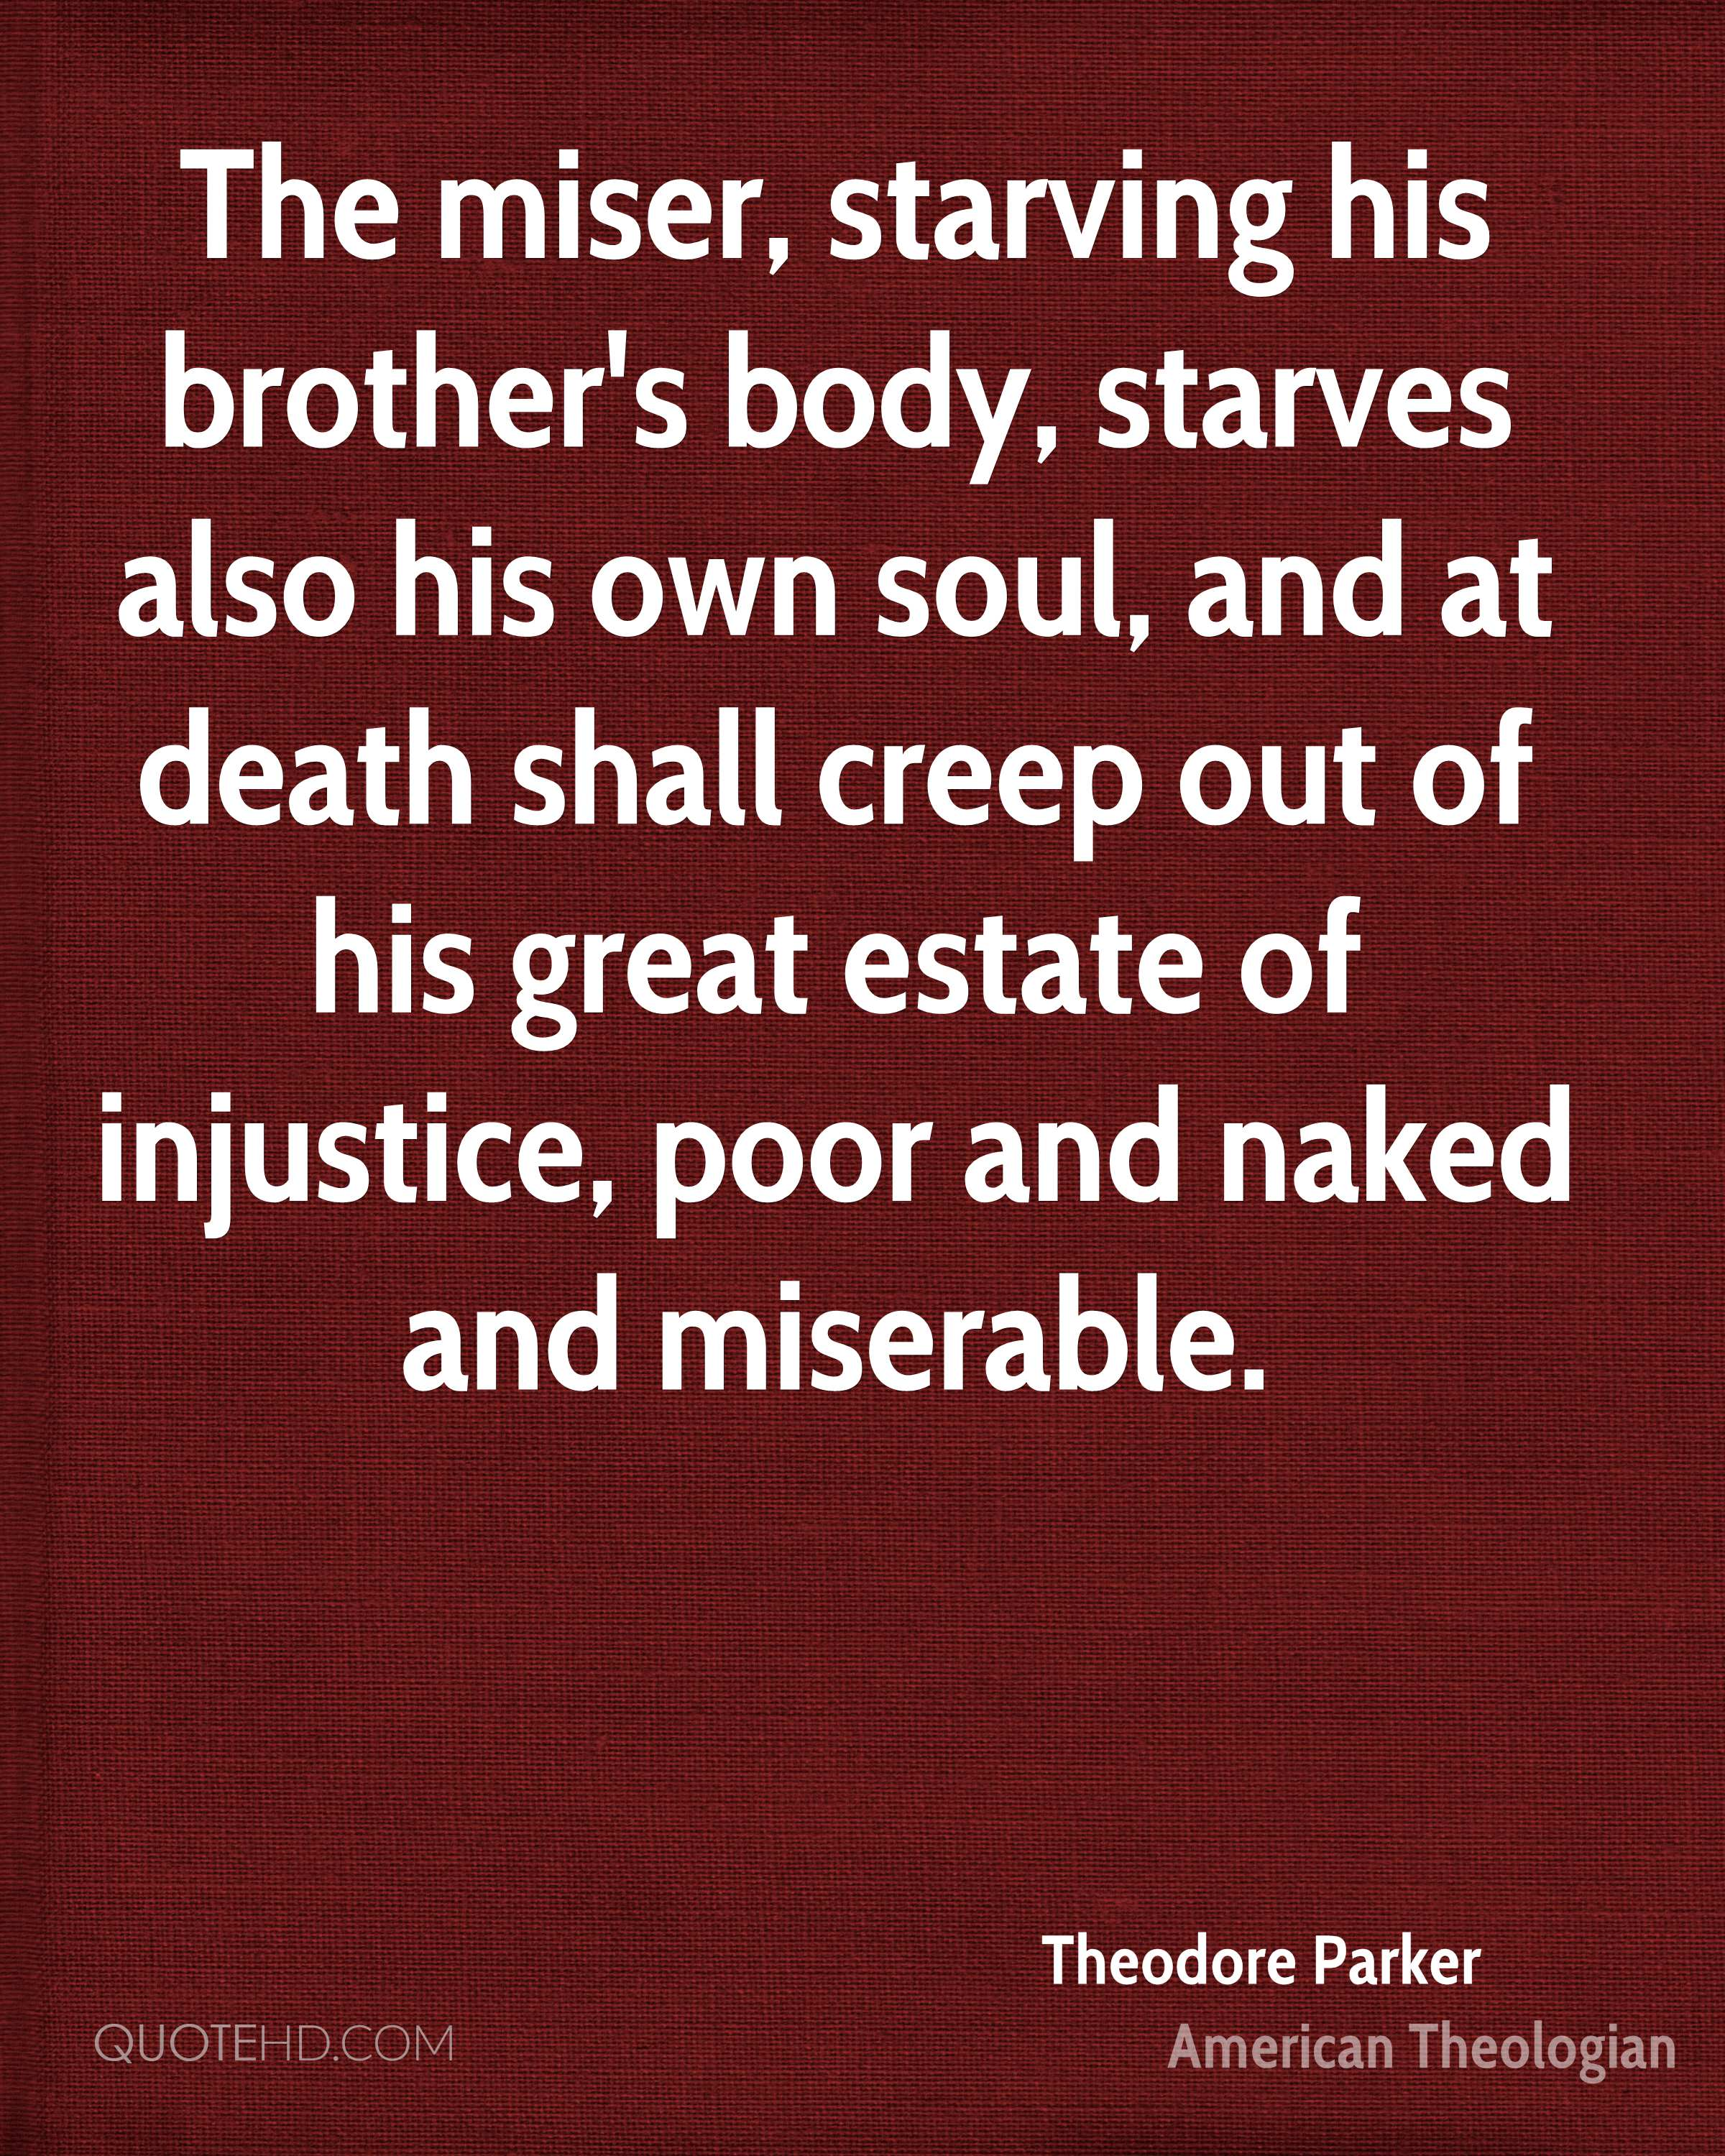 The miser, starving his brother's body, starves also his own soul, and at death shall creep out of his great estate of injustice, poor and naked and miserable.